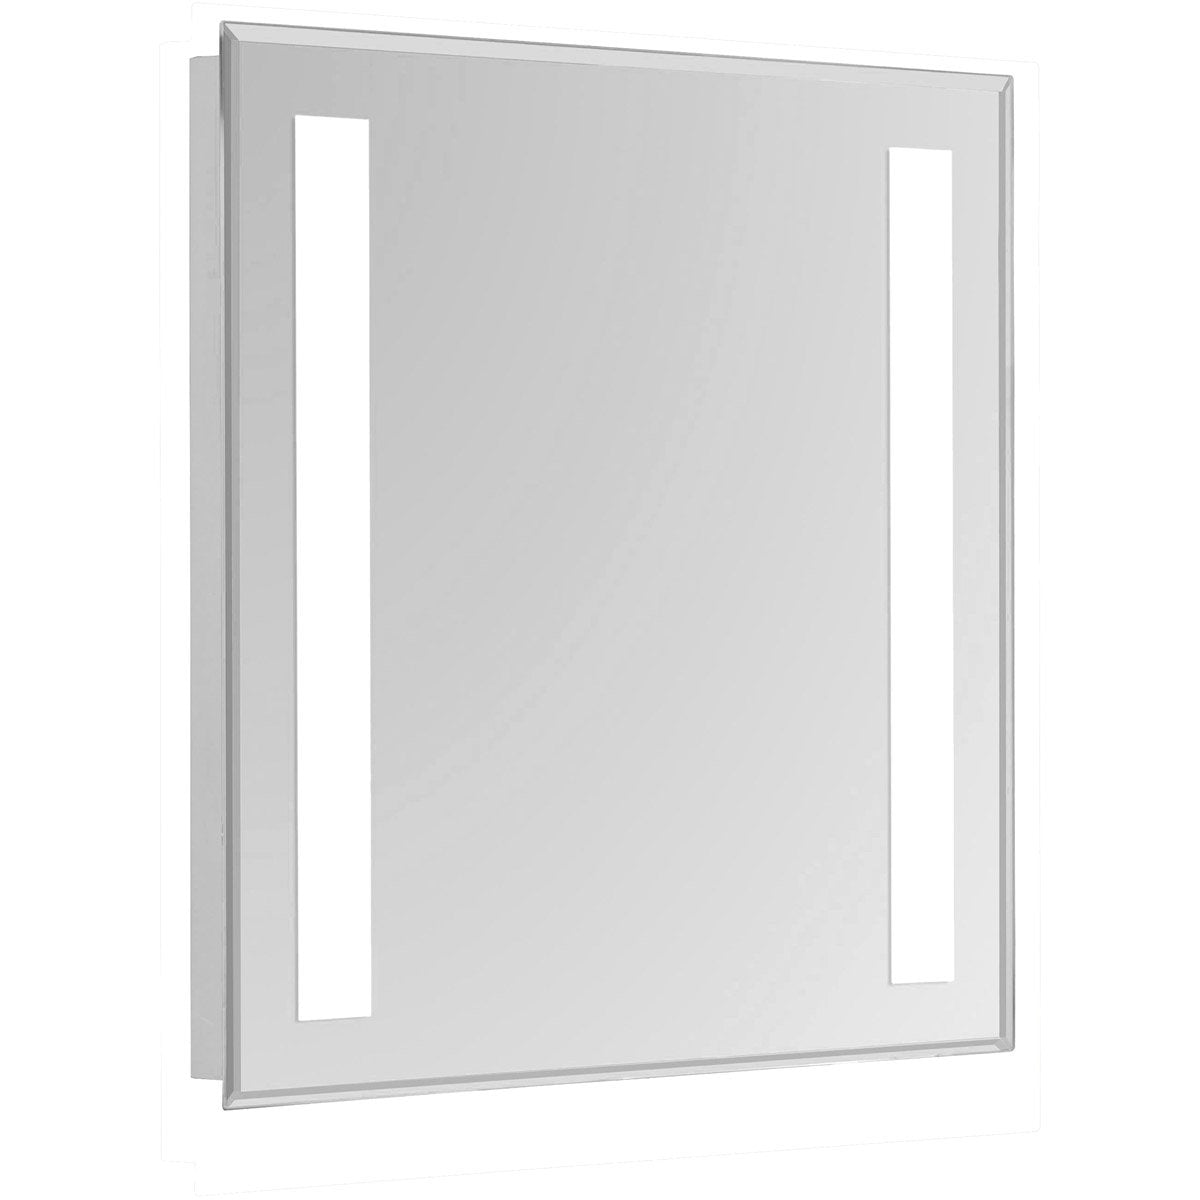 Nova 30 X 24 Hardwired Glossy White Led Wall Mirror (Mre-6303) Led Mirror